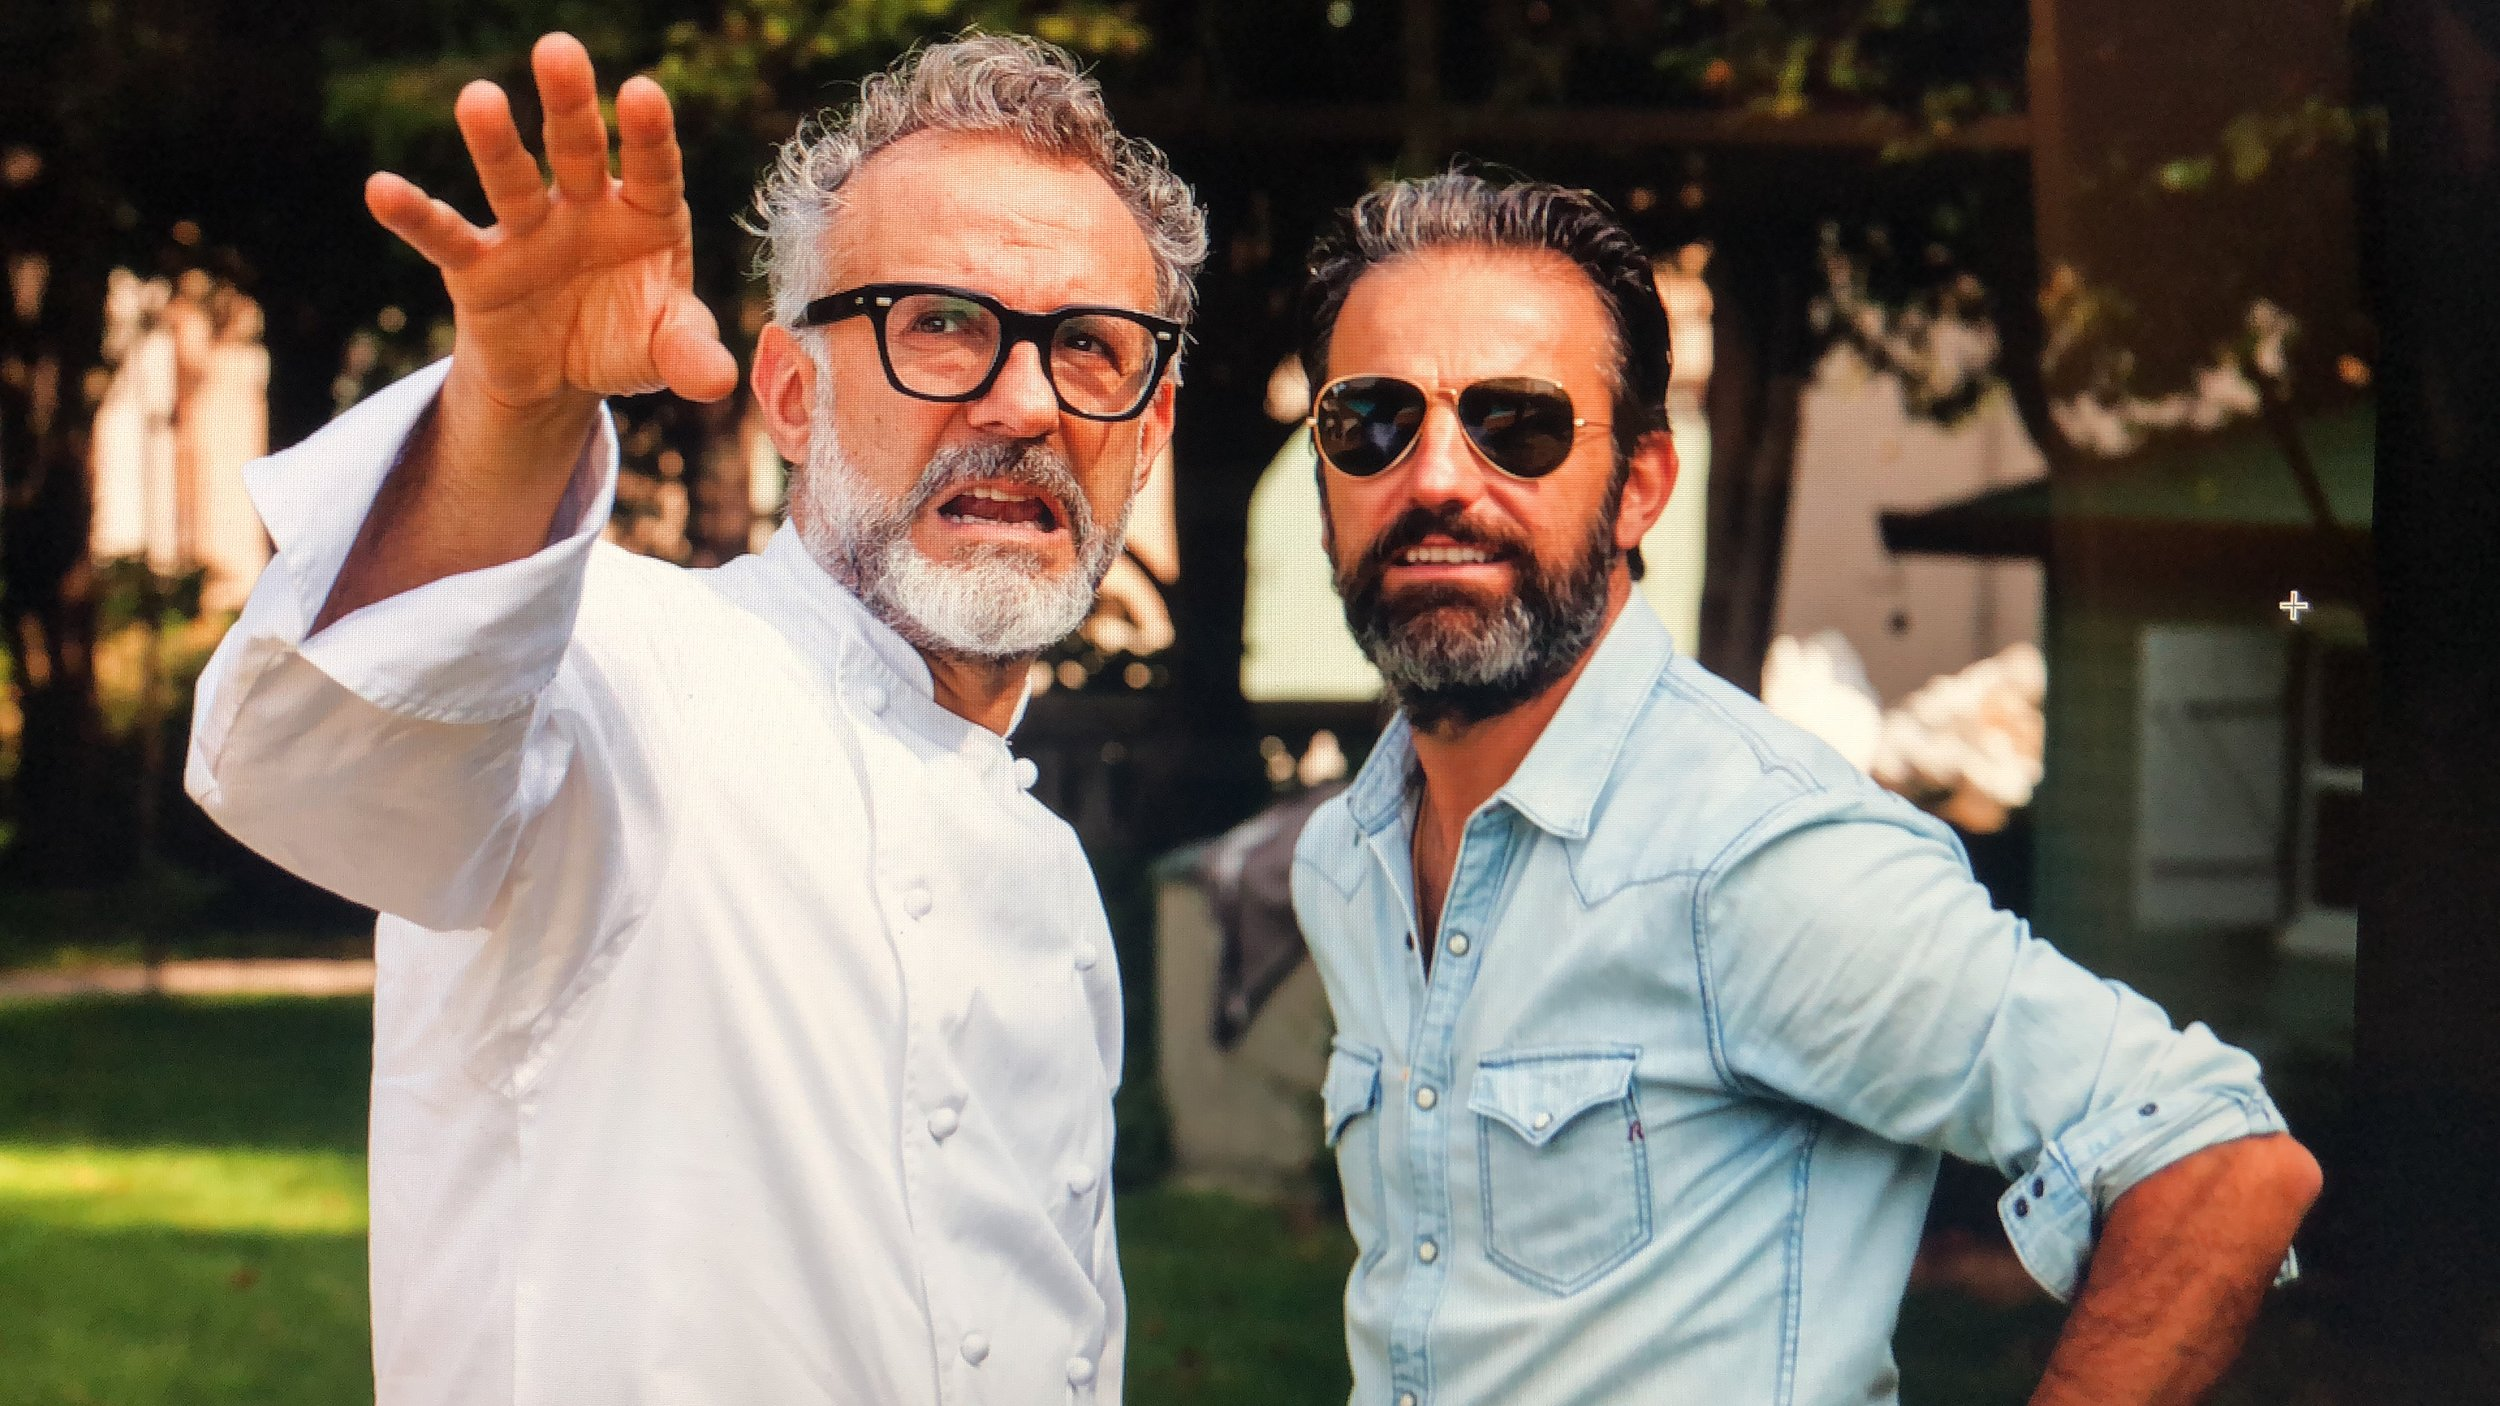 With one of the world's top chefs and close friend Massimo Bottura of Osteria Francescana in Modena.